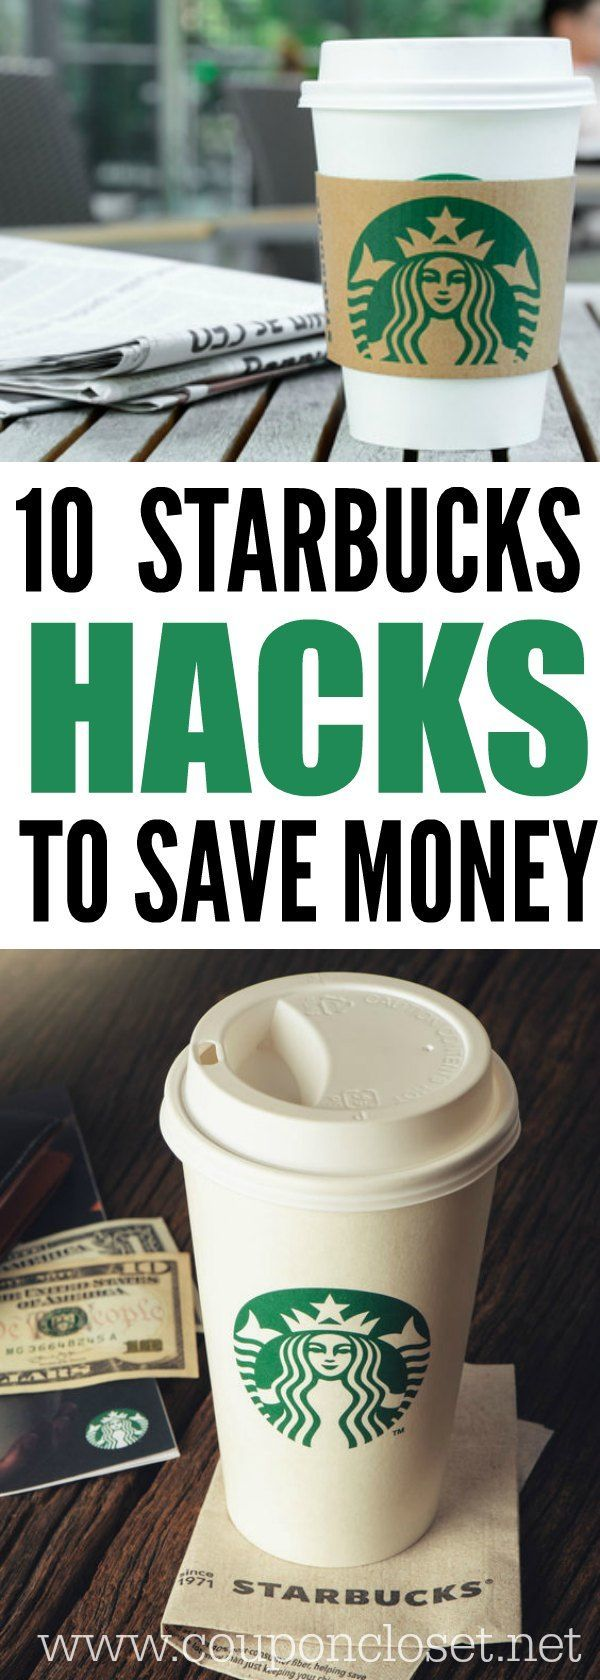 How to save money at starbucks easily. 10 simple and easy ways to save money at starbucks with starbucks rewards and more.